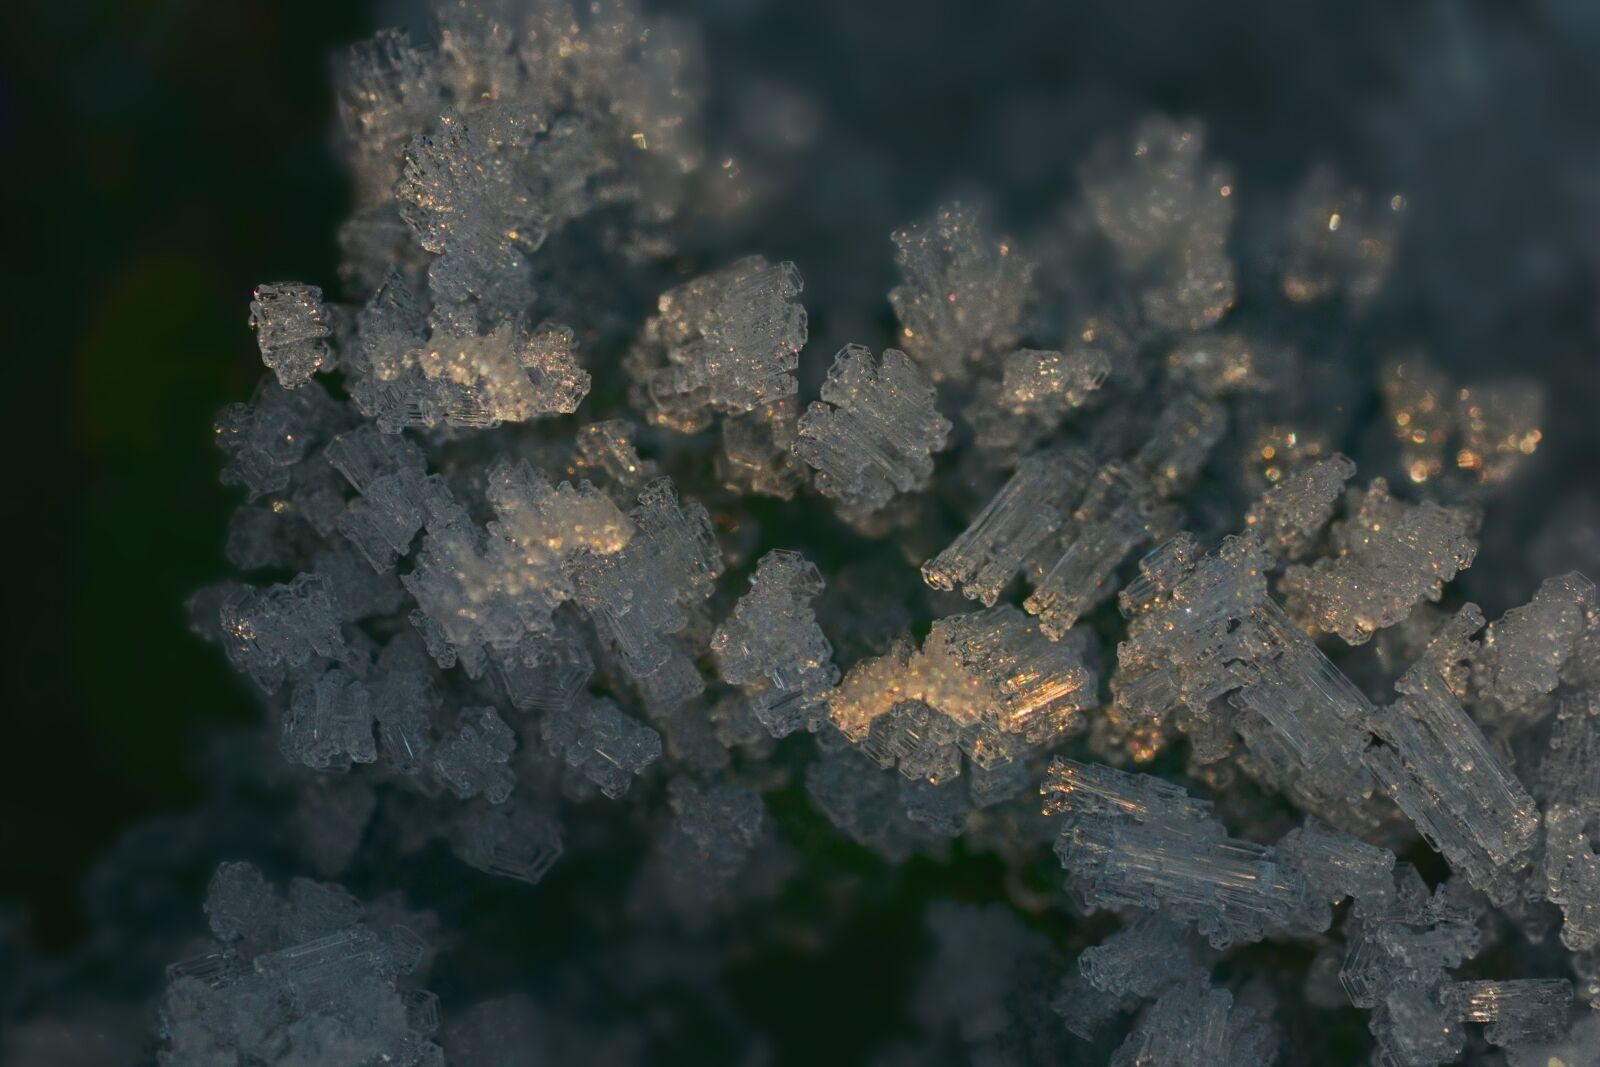 """Sony a6000 sample photo. """"Winter, nature, ice"""" photography"""